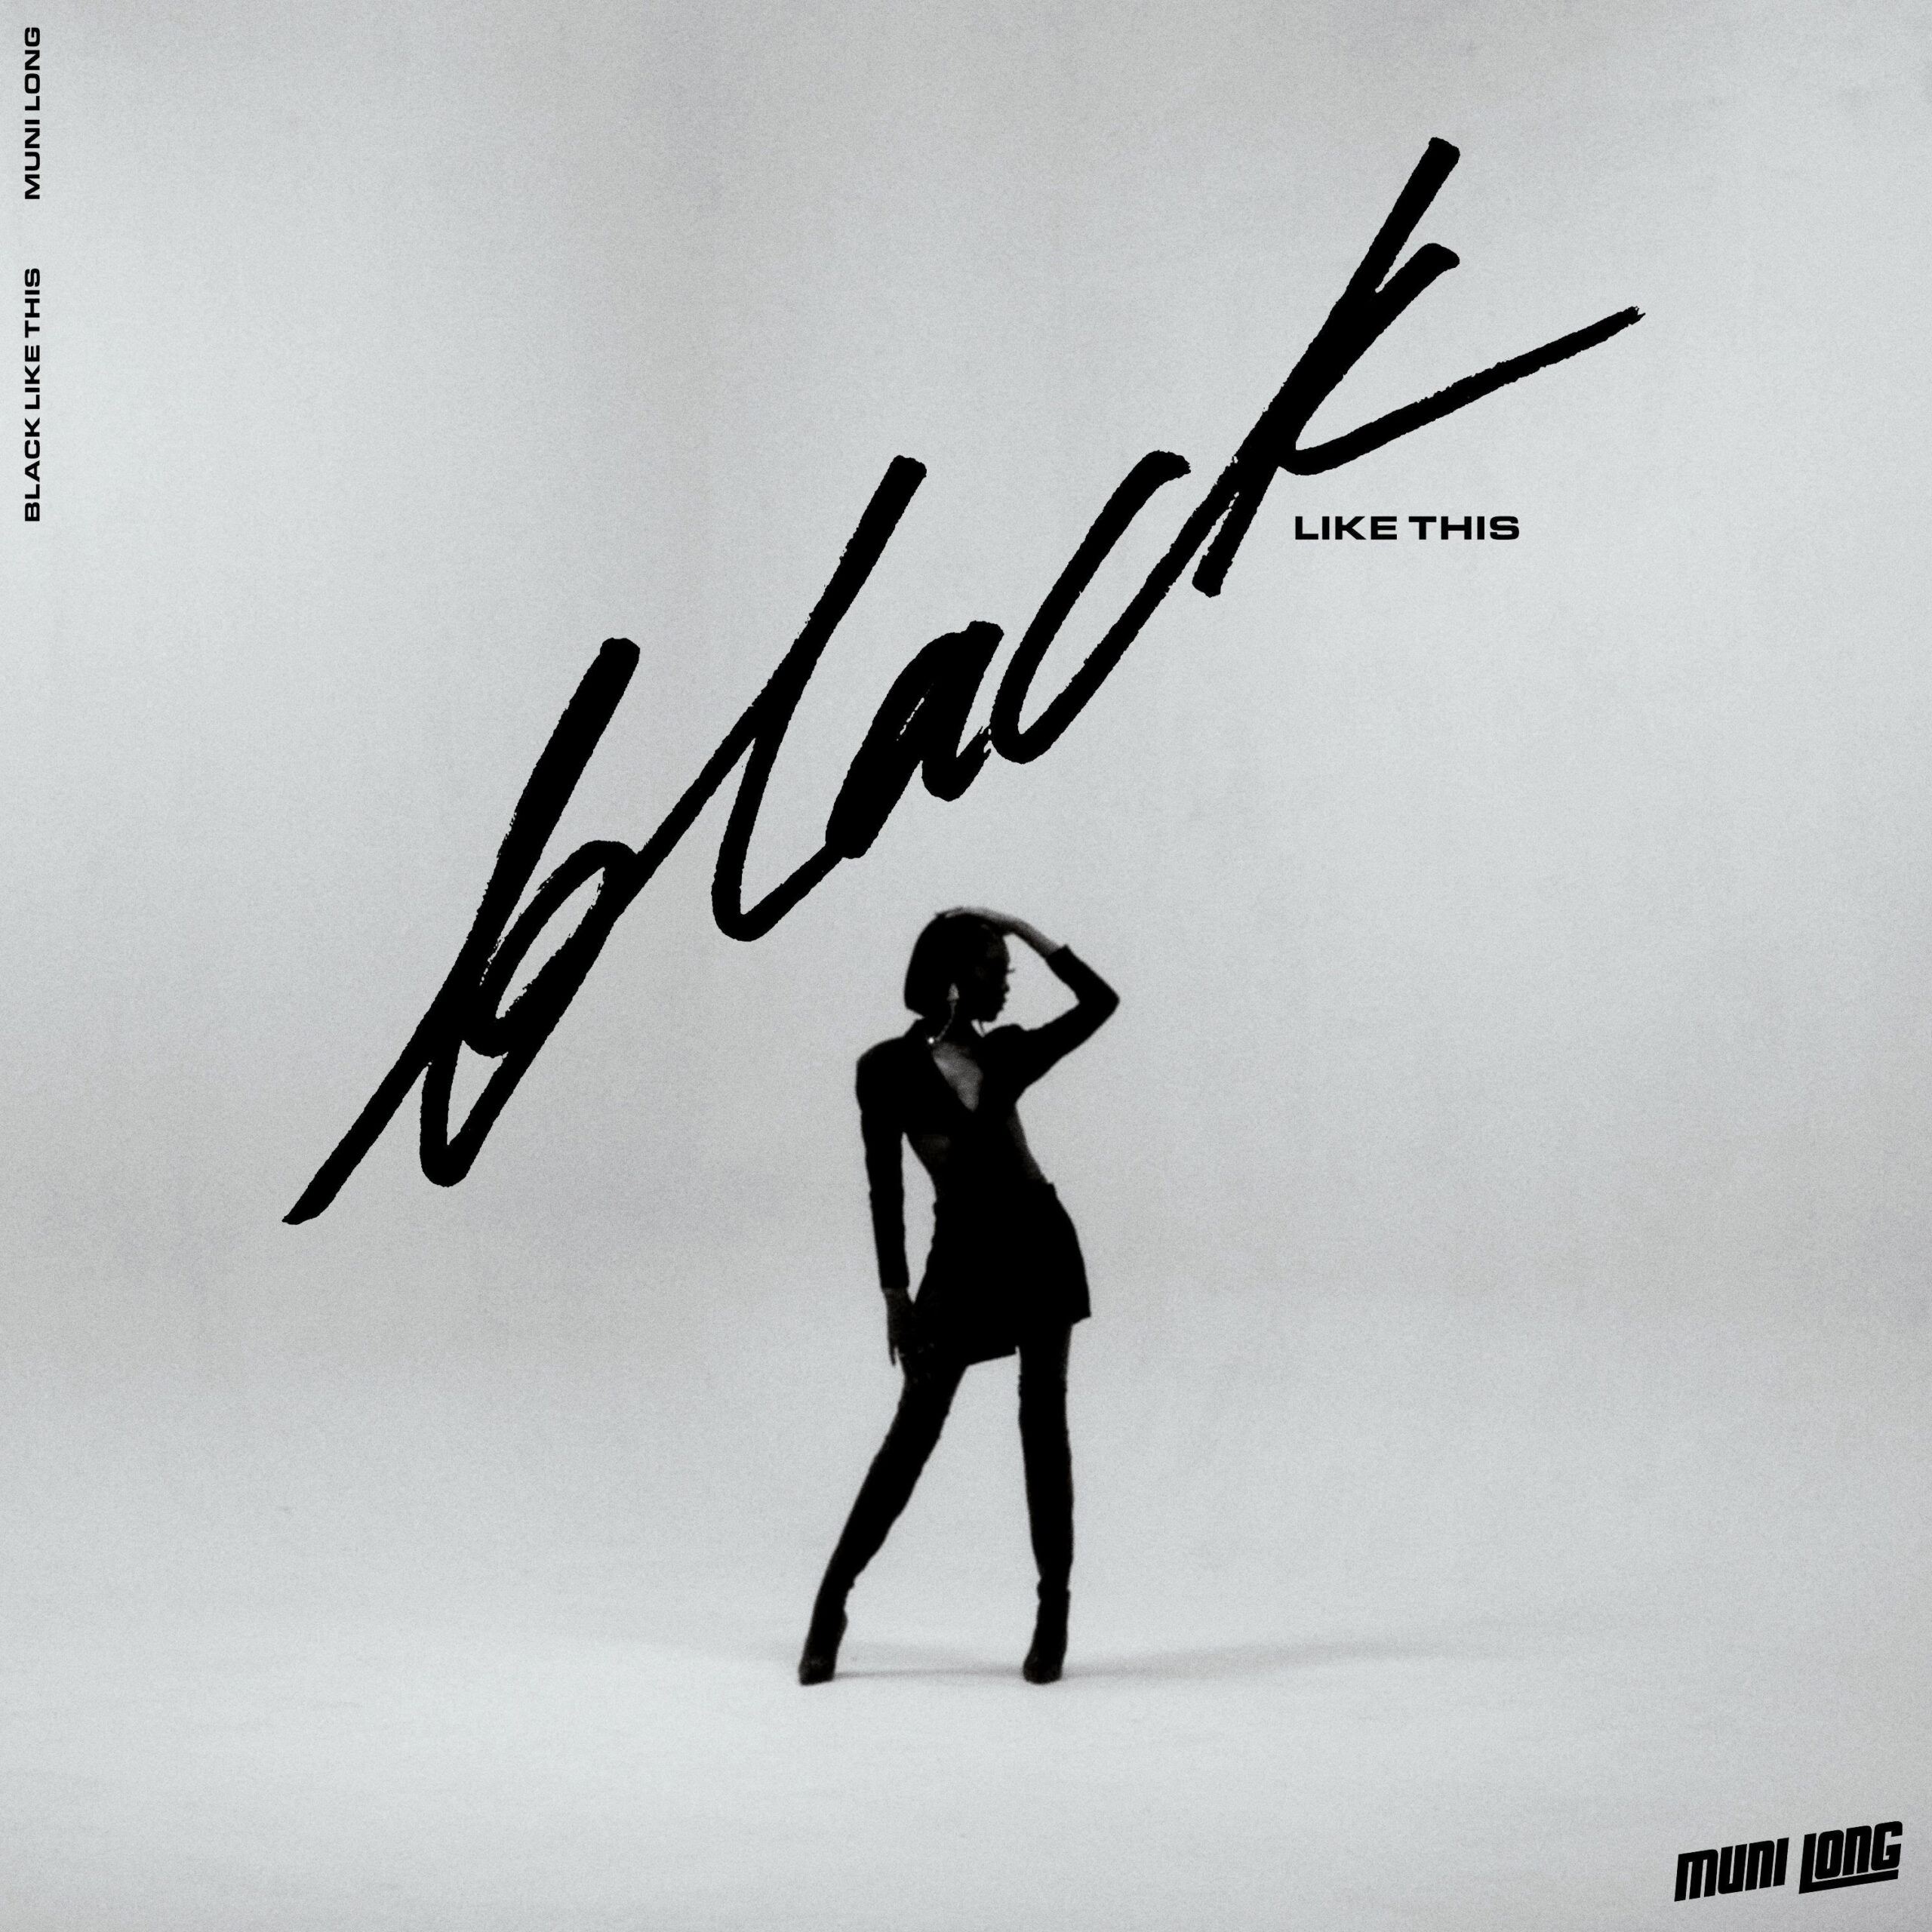 """Muni Long Delivers The Debut EP """"Black Like This"""""""